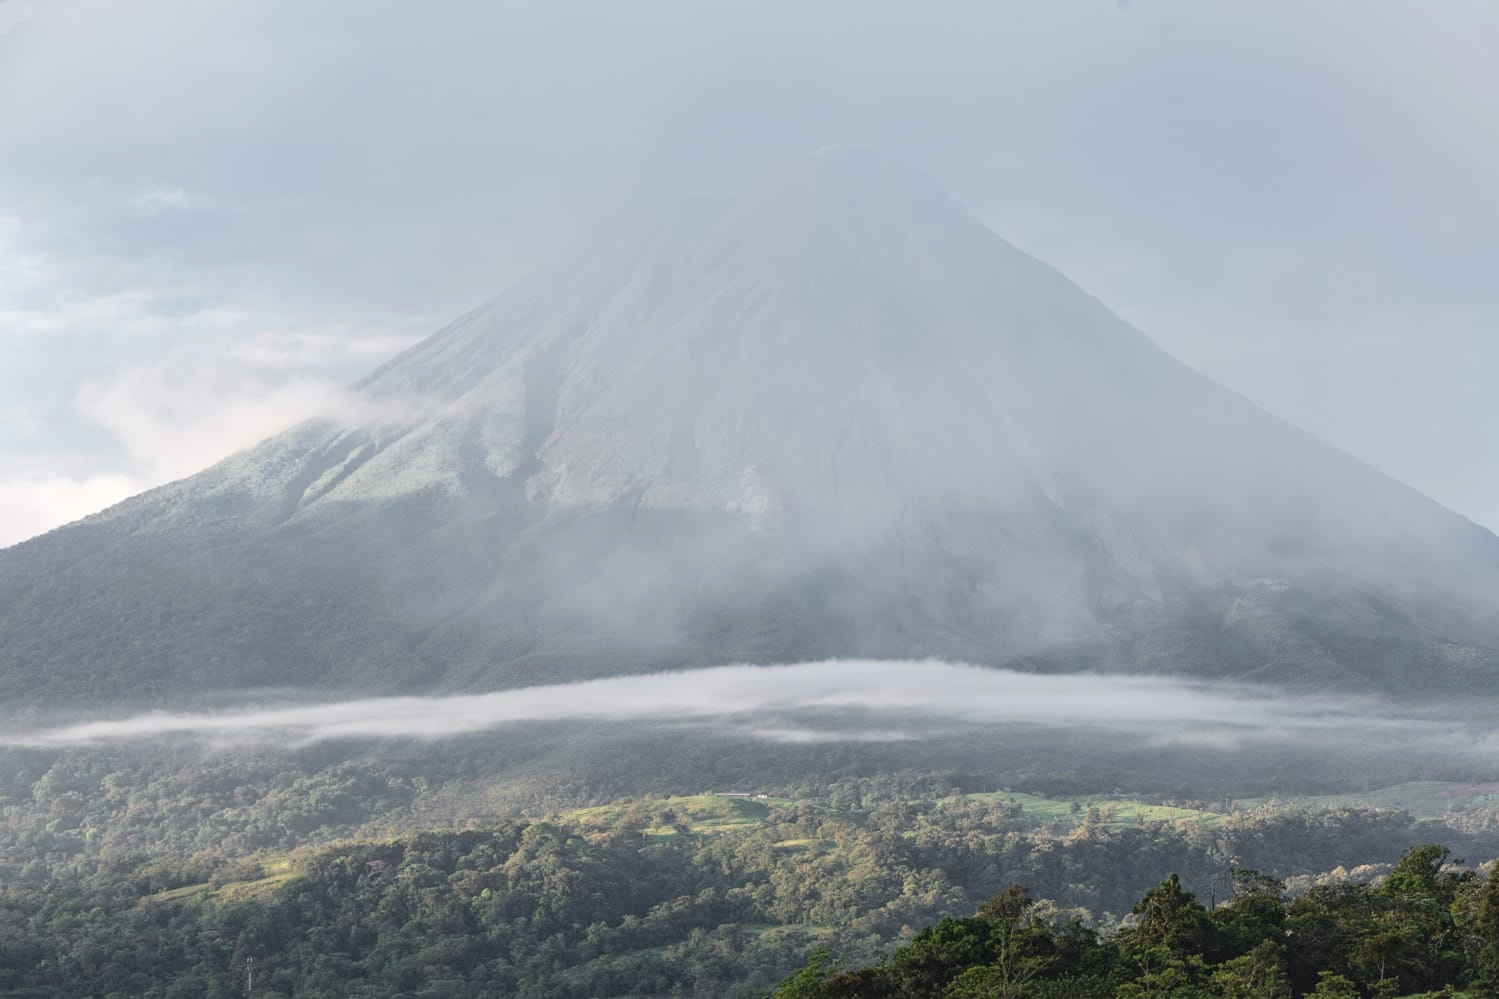 A view of the Arenal Volcano in La Fortuna enveloped in haze as seen from a guest suite at The Springs Resort & Spa.